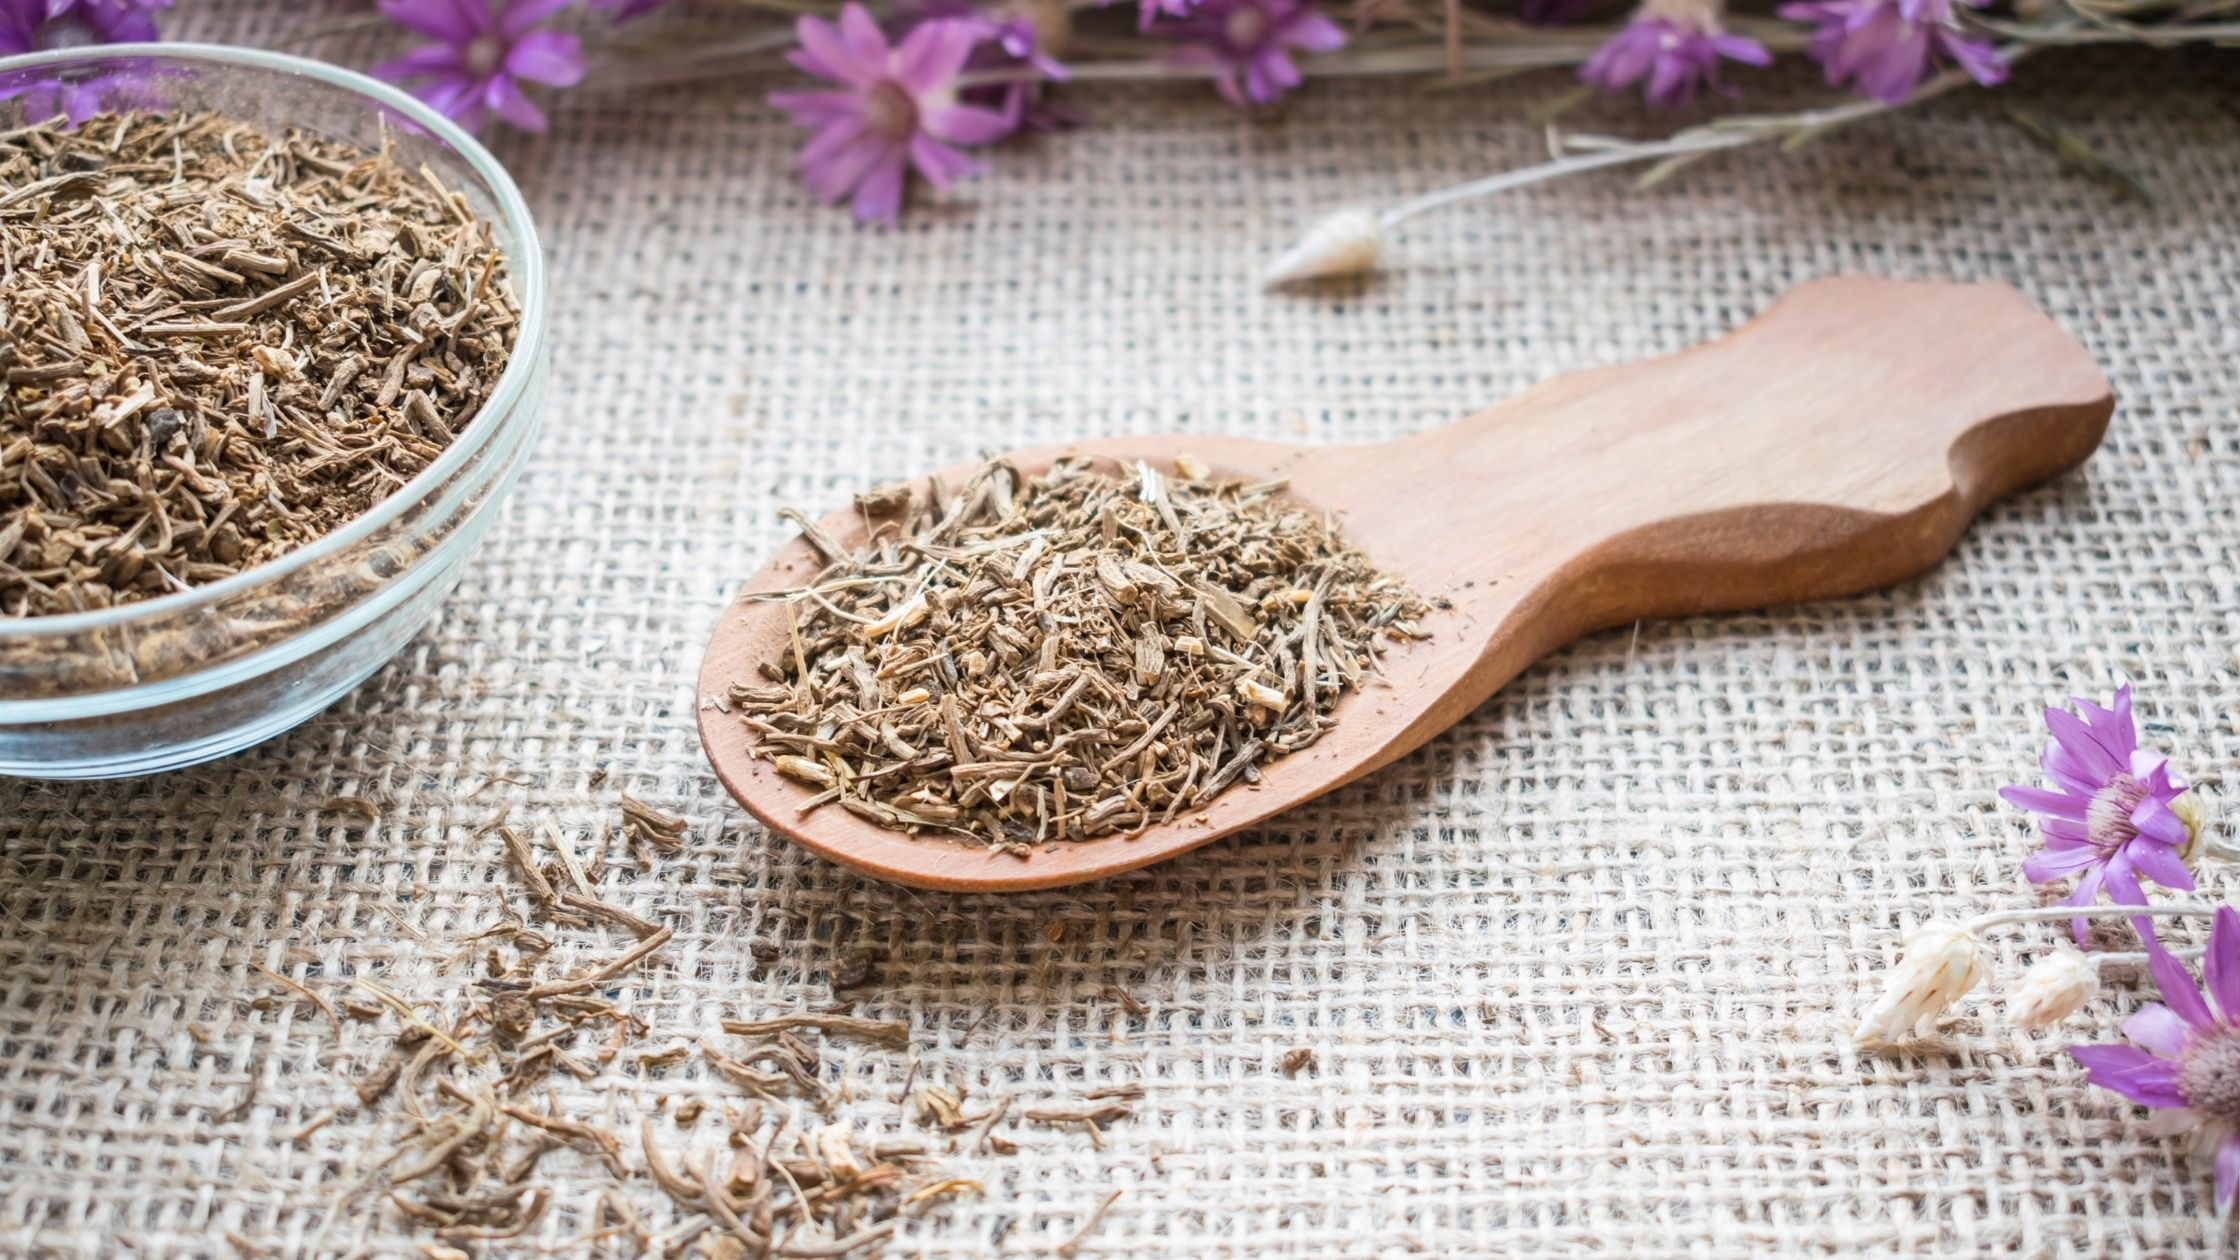 Valerian Remedies to Reduce Vaginal Dryness